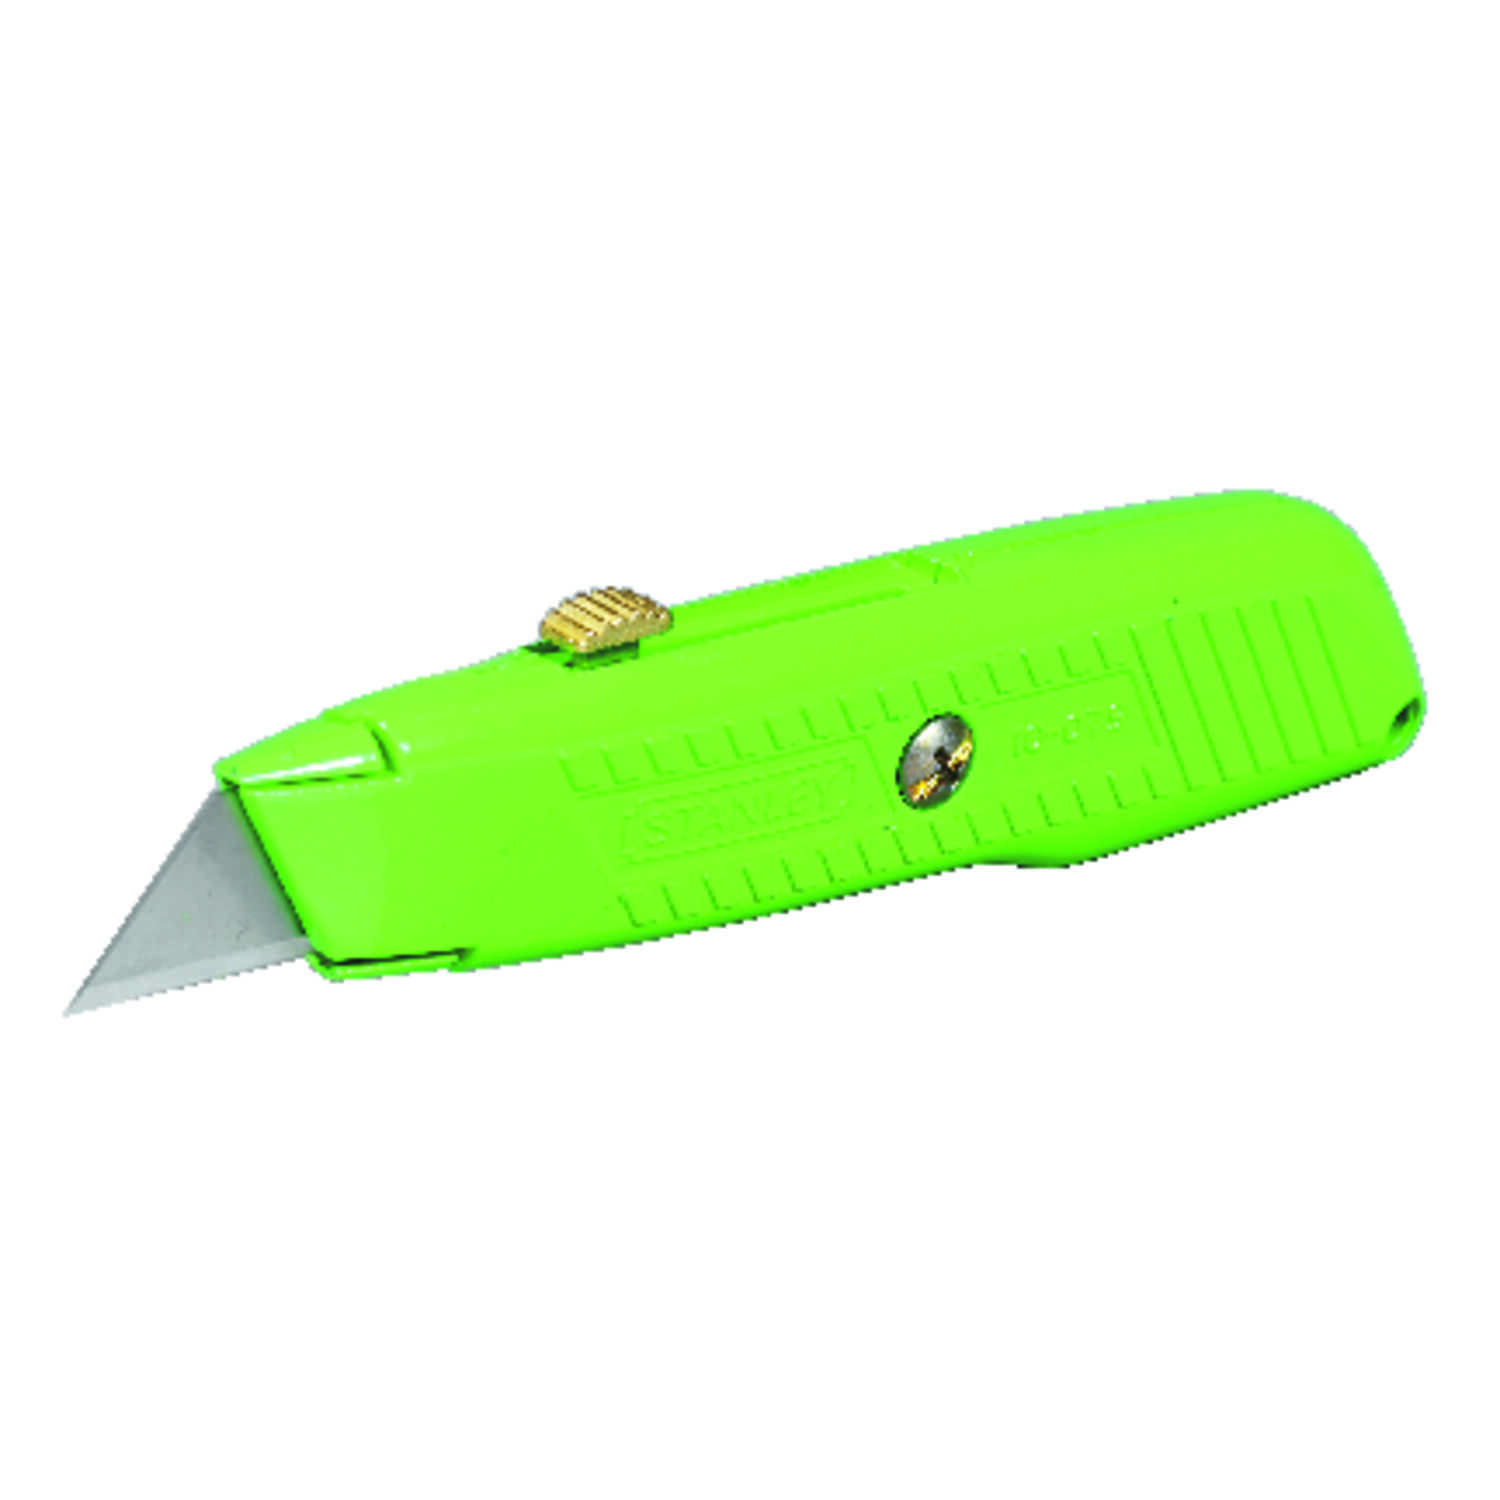 Stanley  5-7/8 in. Retractable  Utility Knife  Green  1 pc.